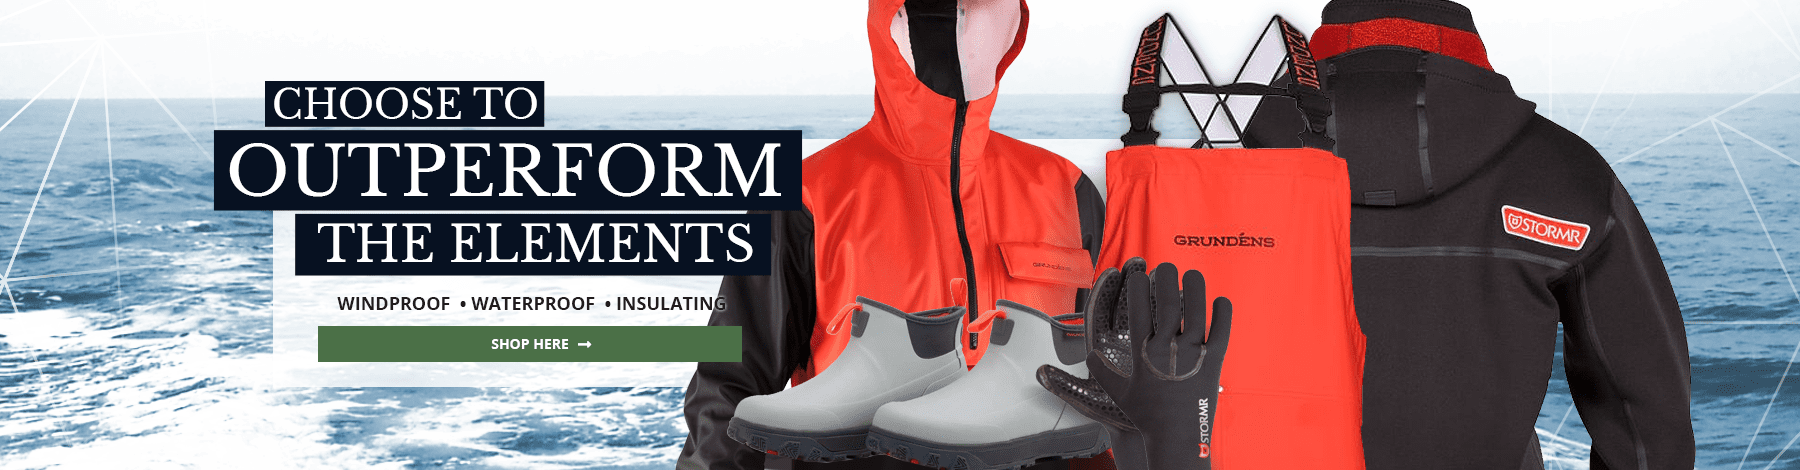 Windproof, Waterproof, Insulating Gear and Clothing